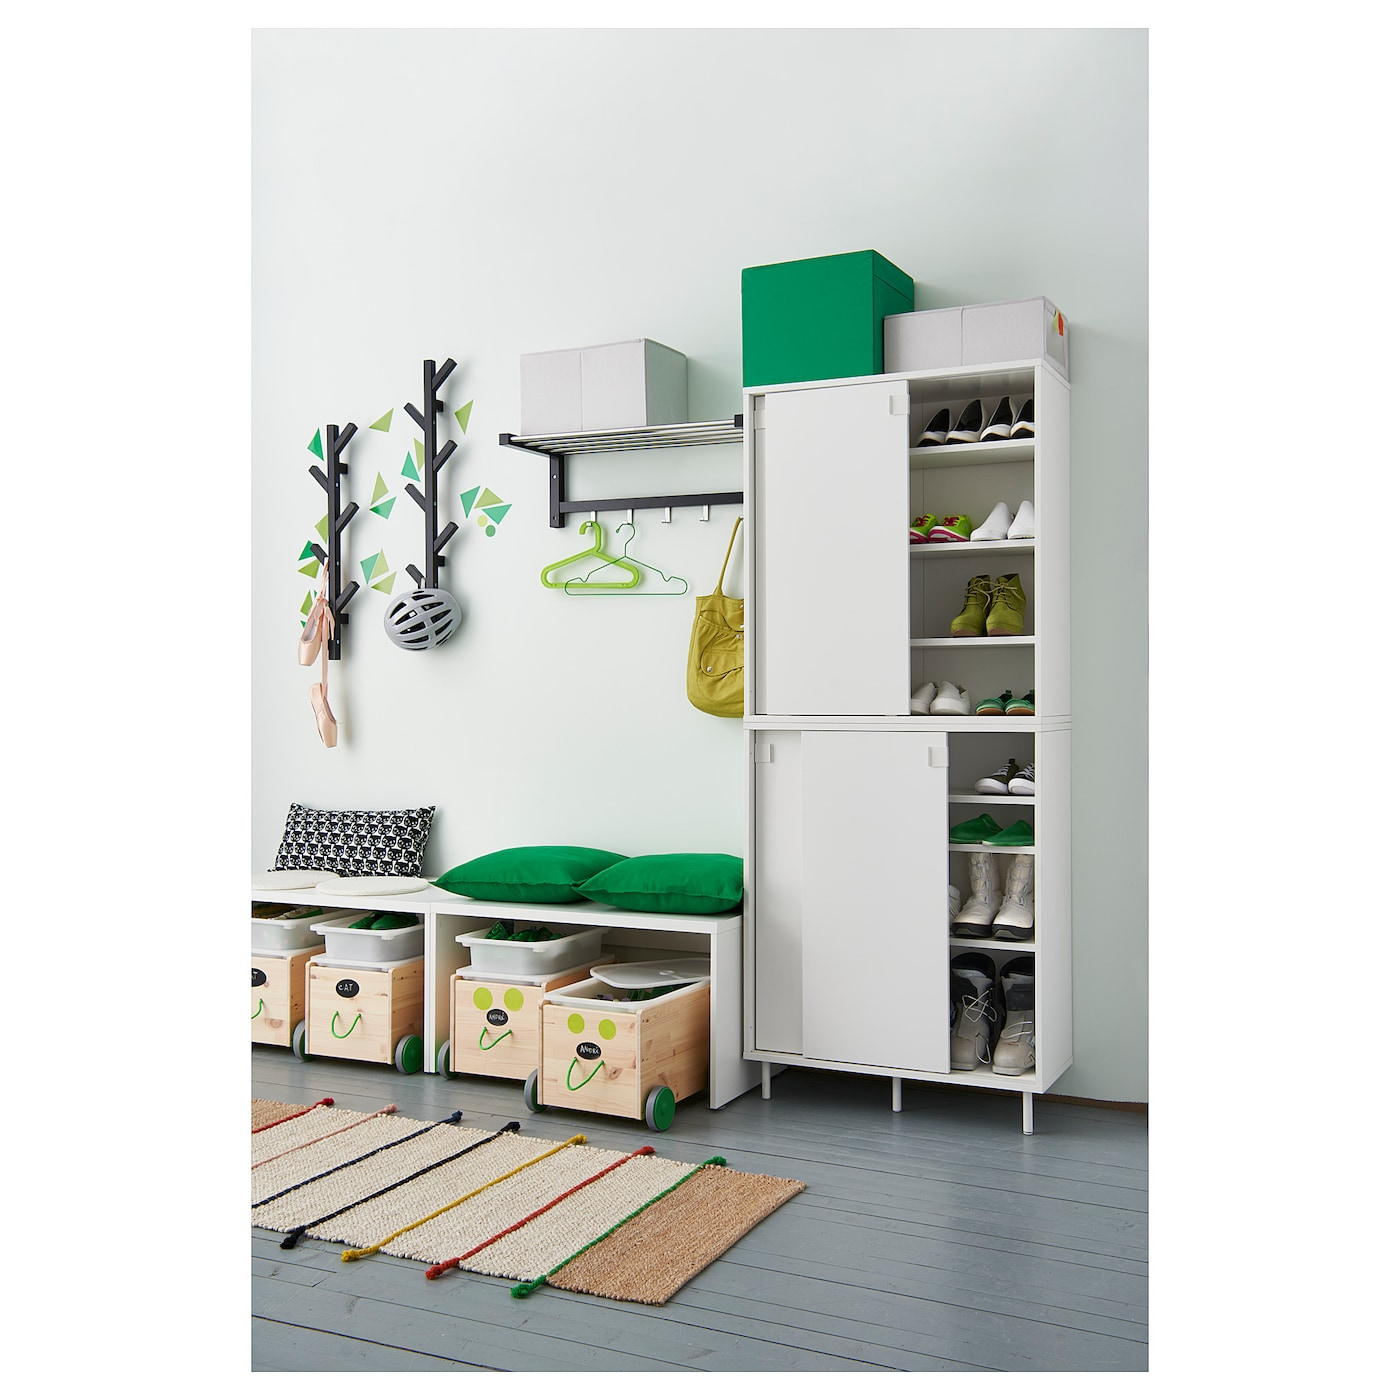 IKEA MACKAPÄR shoe cabinet/storage Ideal in smaller areas since the sliding doors save space.